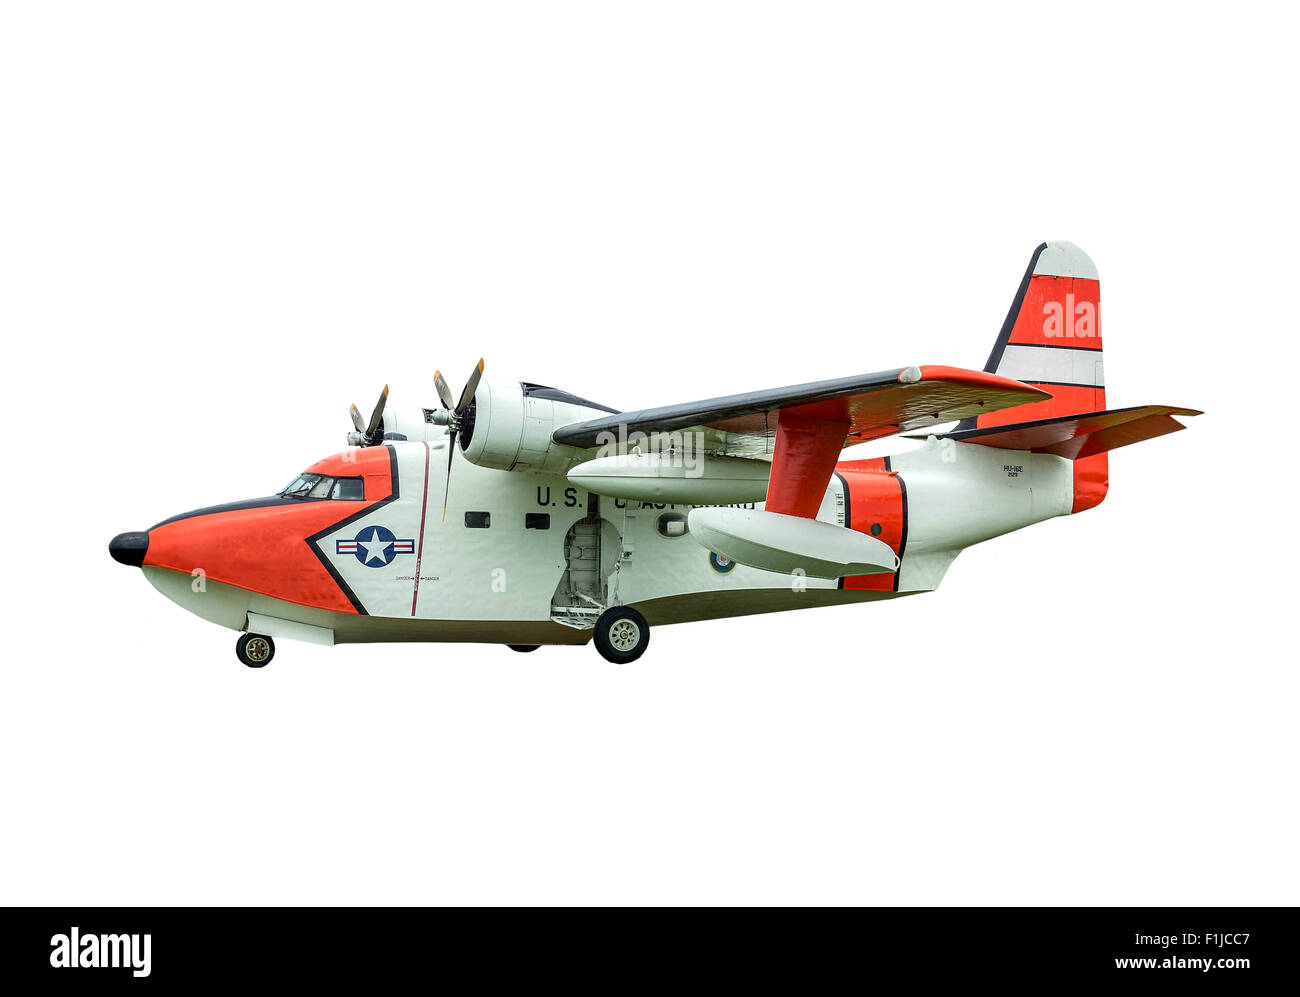 A HU-16 Albatross twin radial engine amphibious flying boat on a white background. Stock Photo